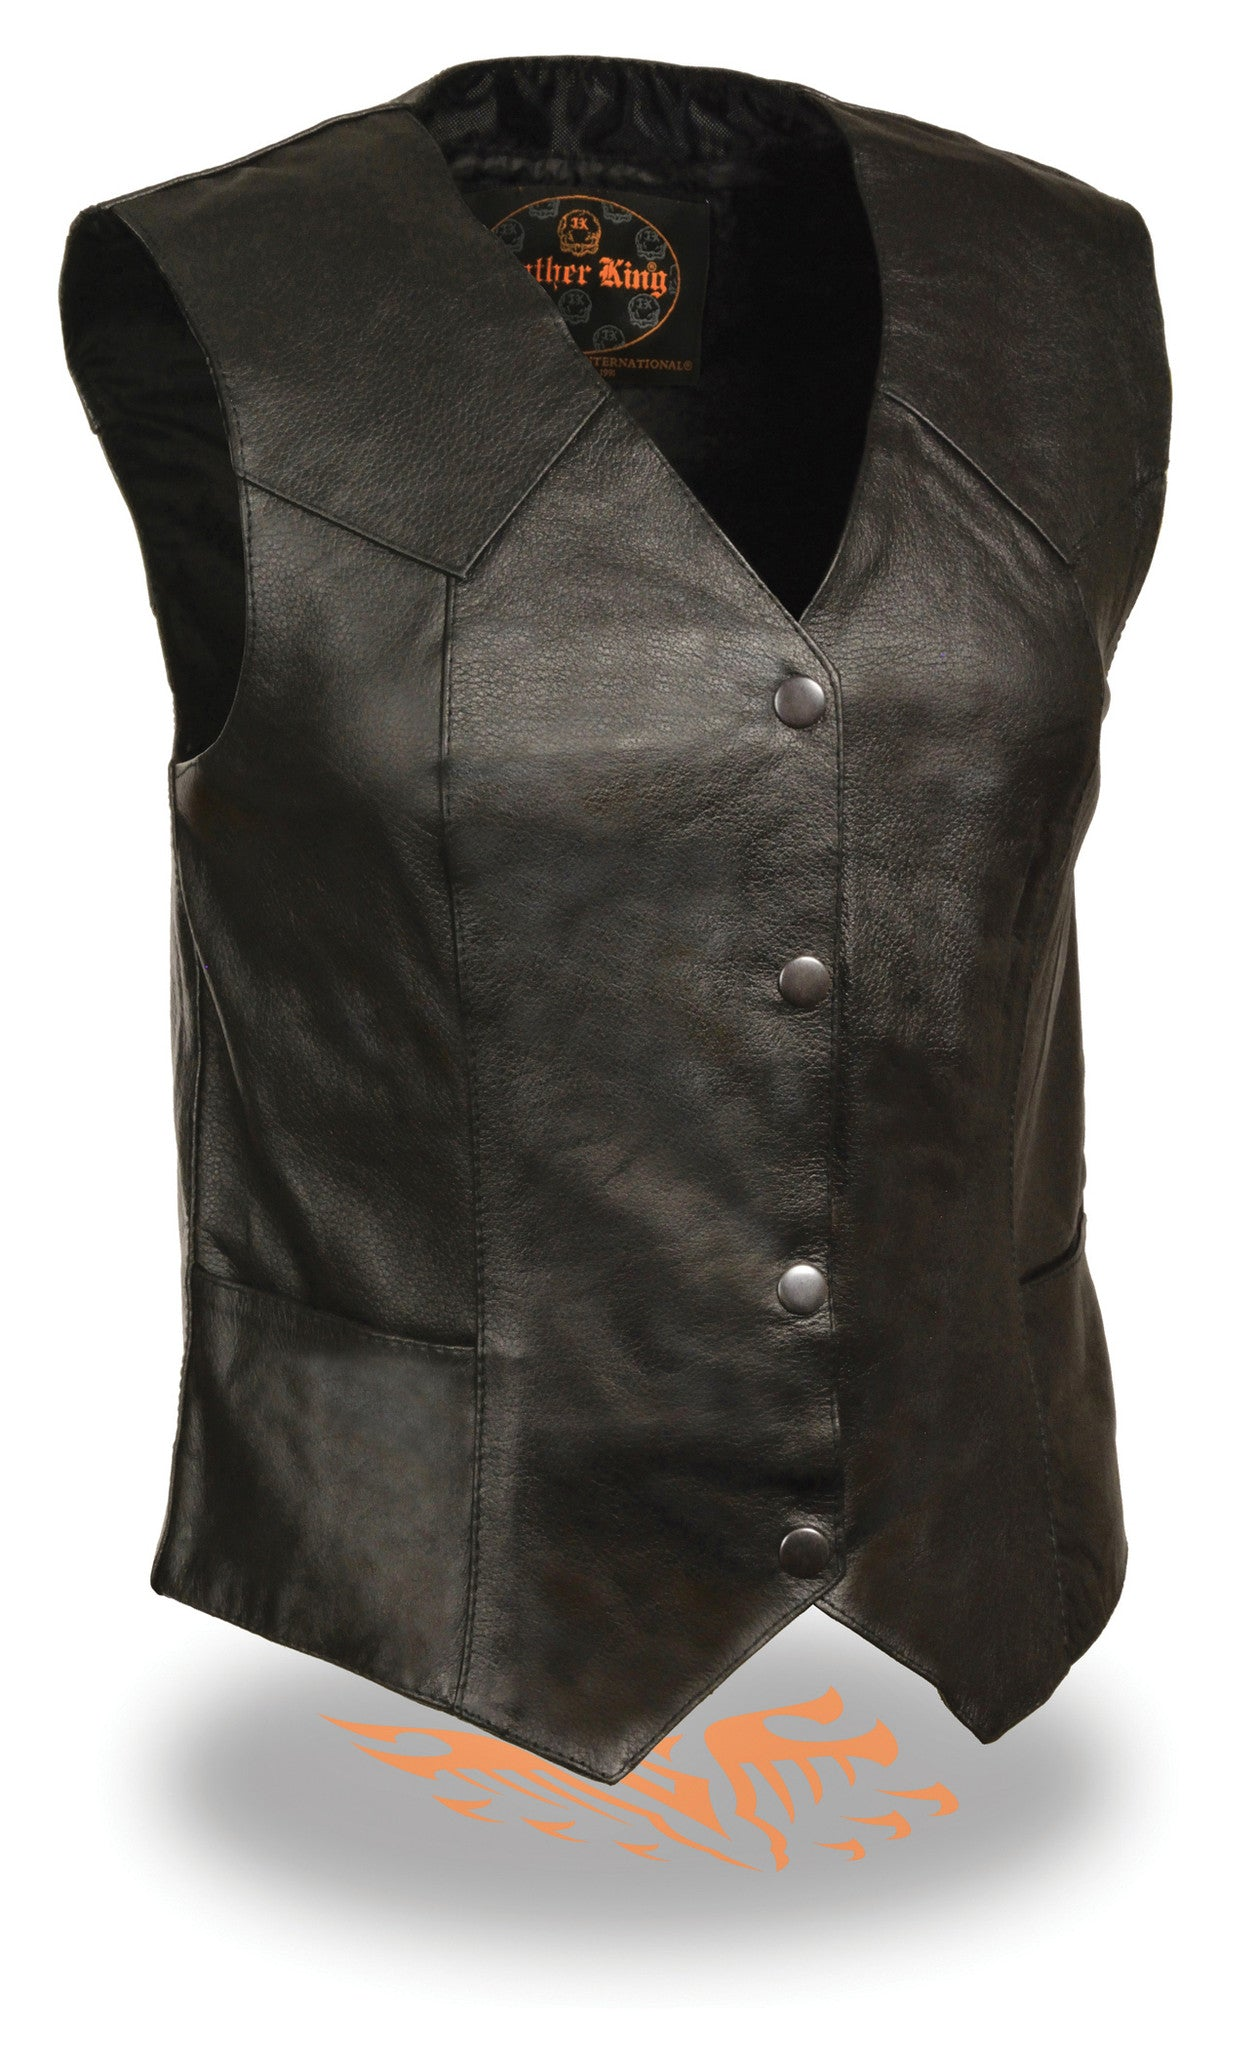 LONG LEATHER 4 SNAPS CLASSIC VEST DURABLE COW LEATHER